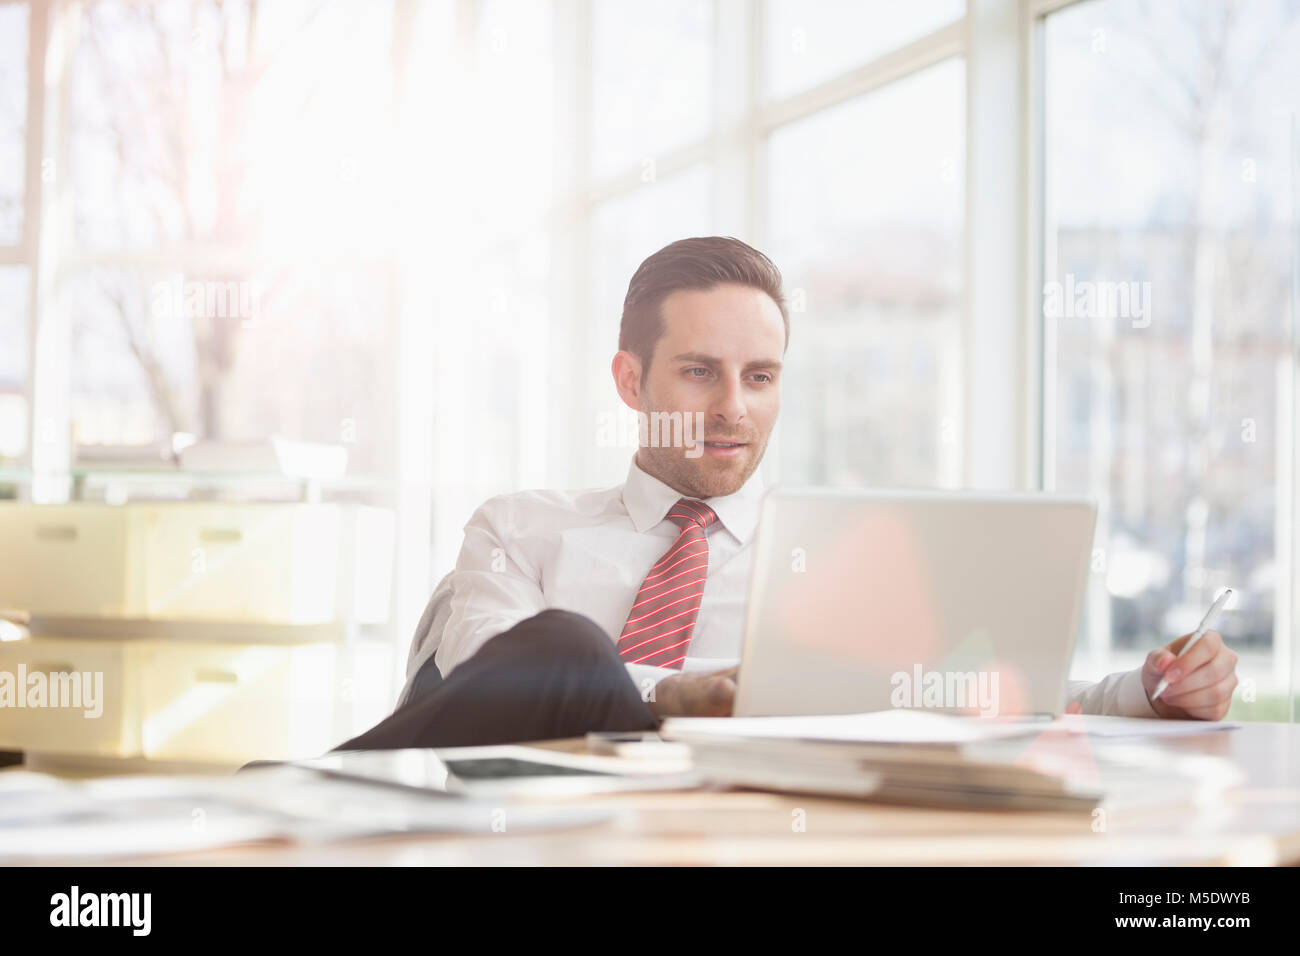 Young businessman using laptop at office desk - Stock Image